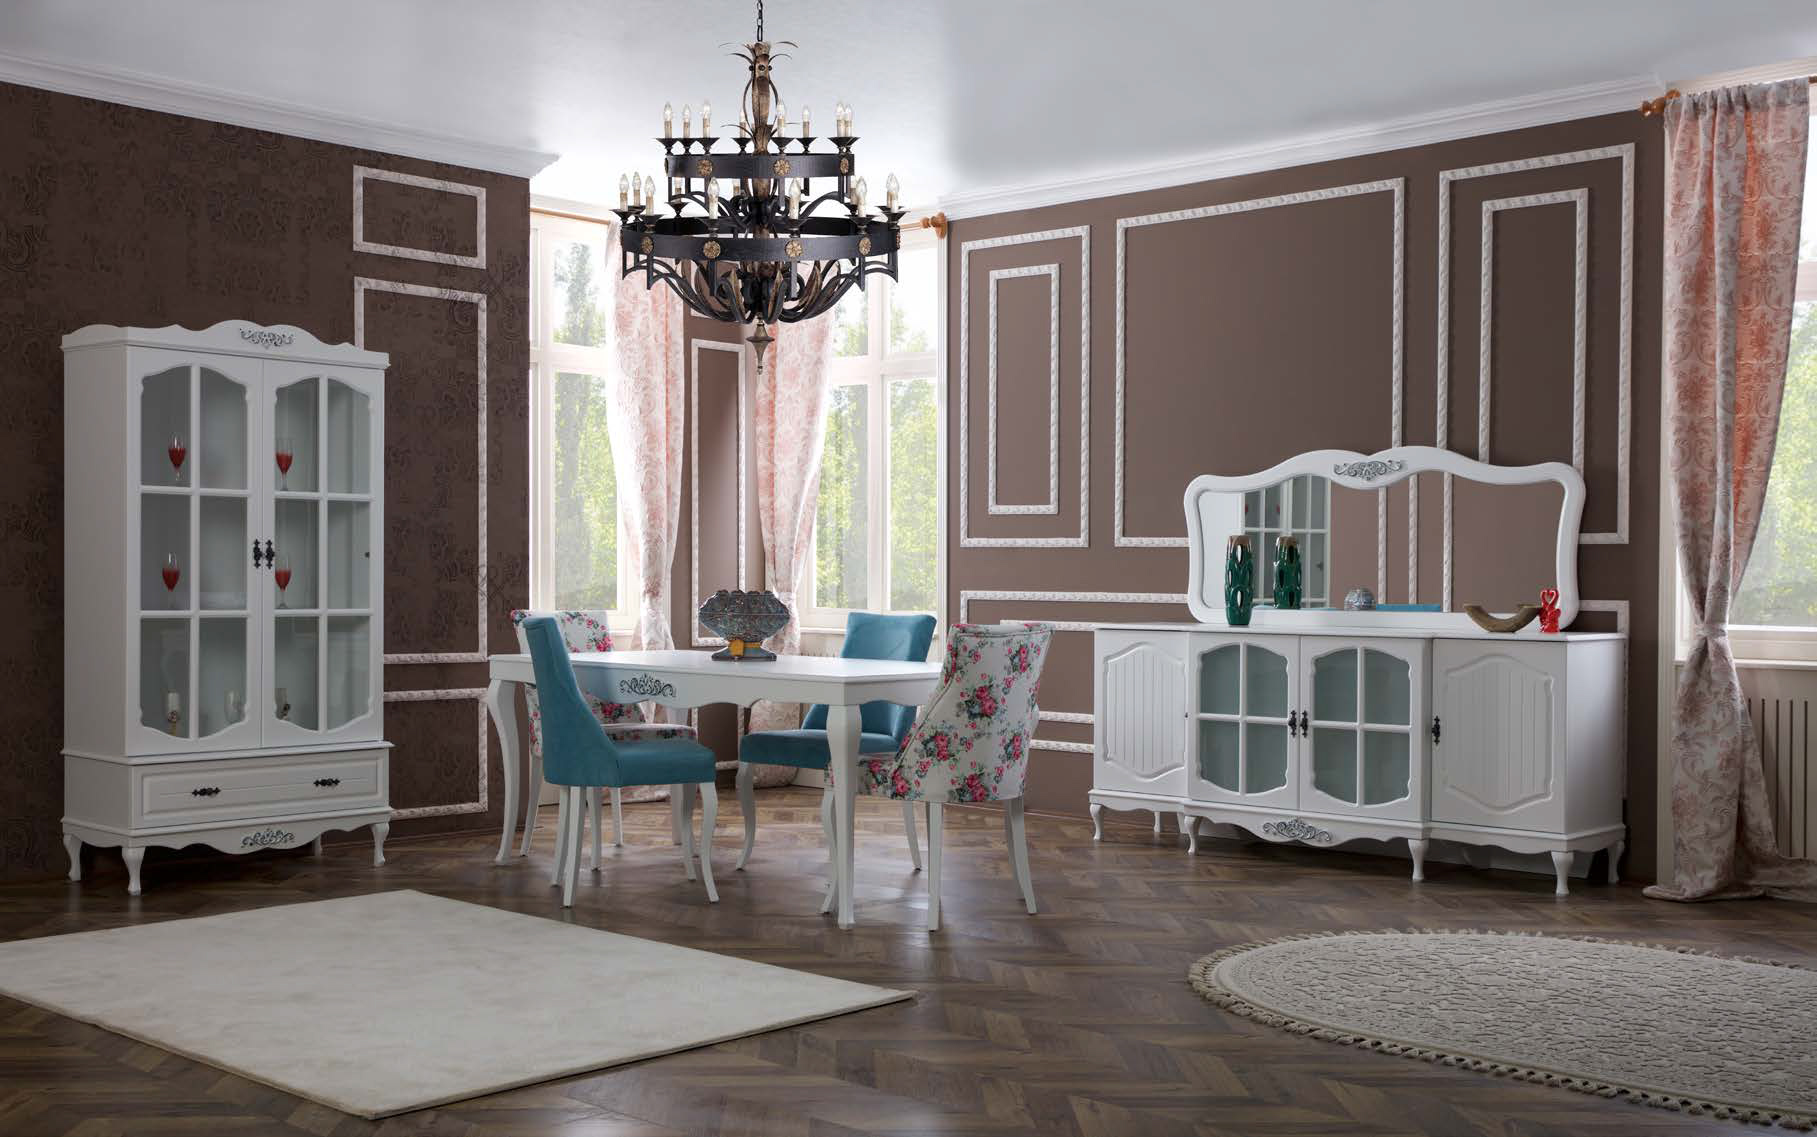 parma esszimmer yuvam m belhaus in wuppertal cilek. Black Bedroom Furniture Sets. Home Design Ideas